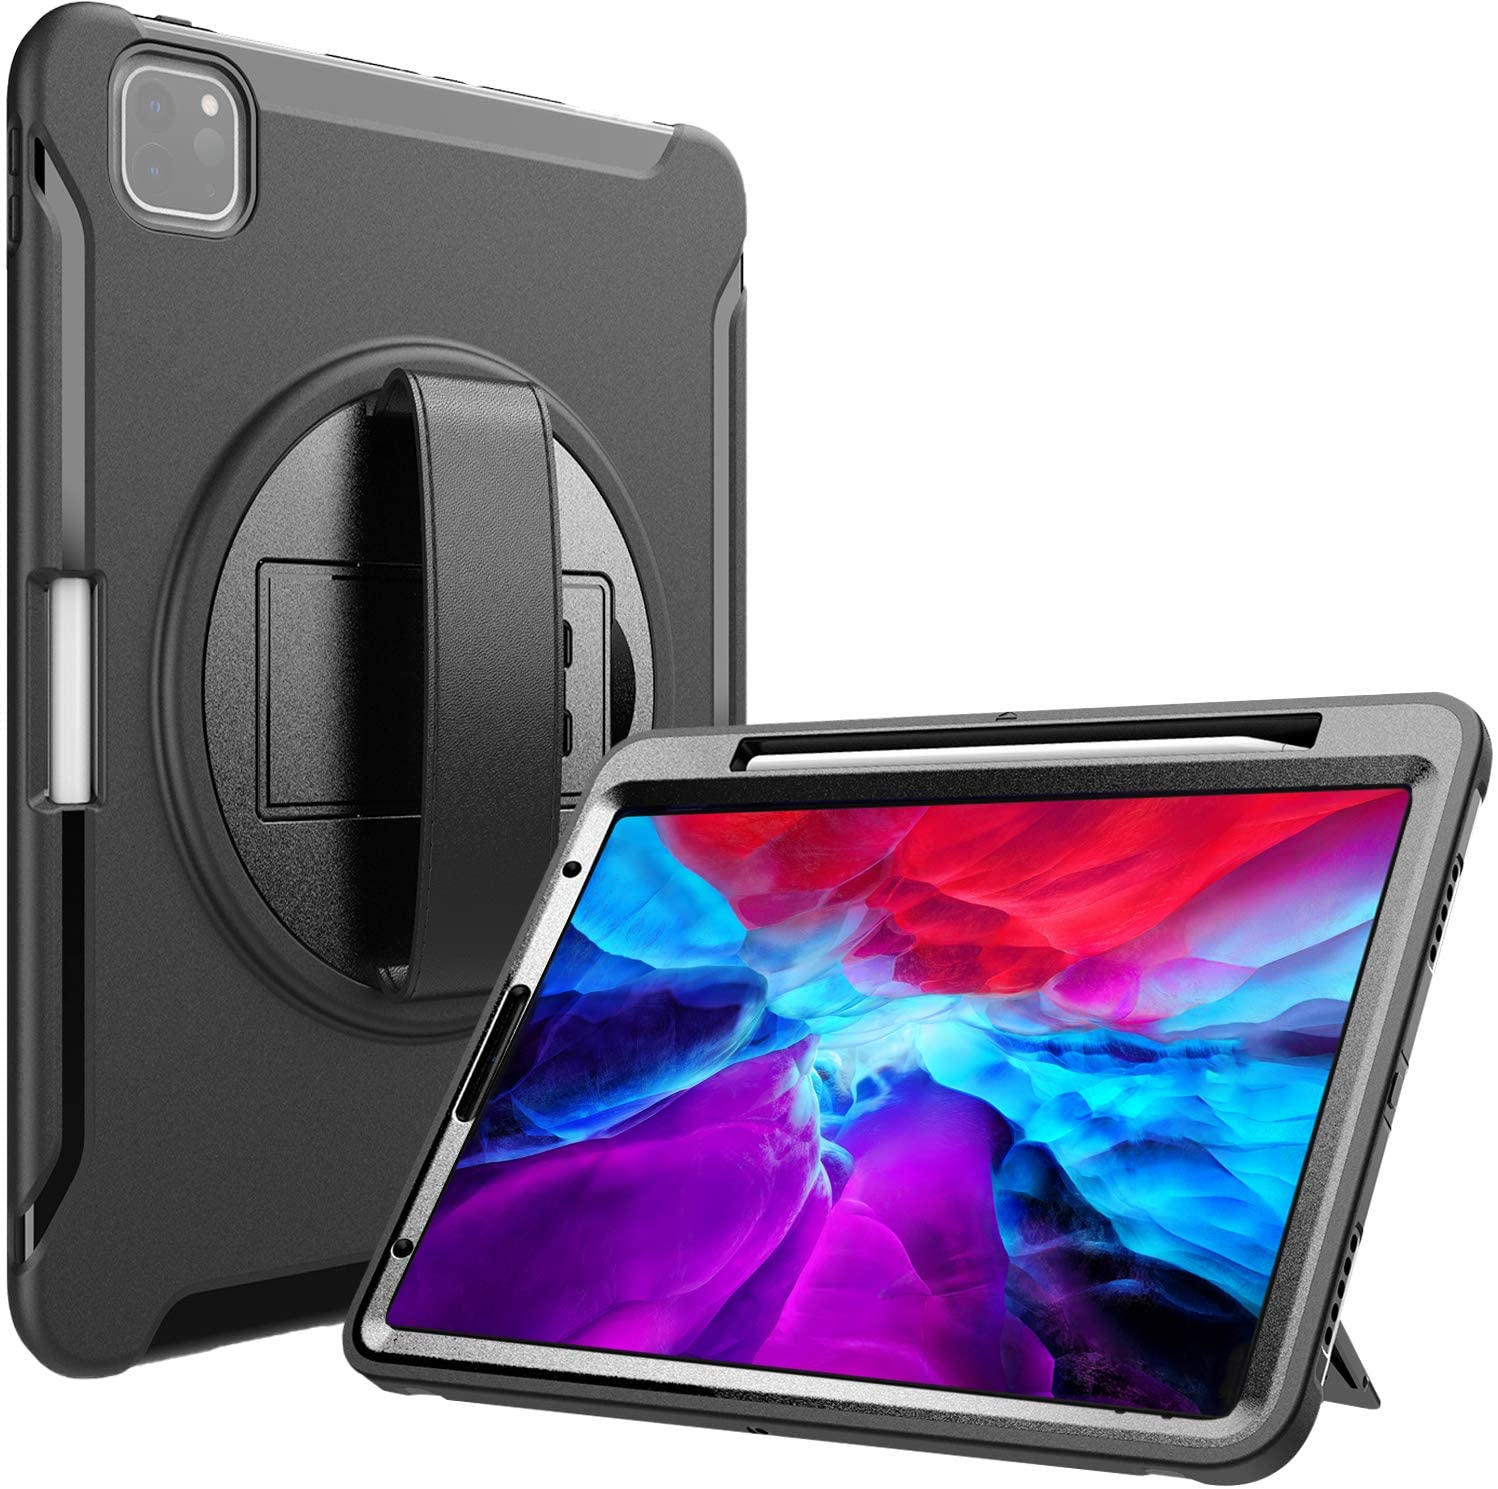 "ProCase iPad Pro 12.9 Rugged Case 2020 & 2018 [Support Apple Pencil 2 Charging], Heavy Duty Shockproof Rotatable Kickstand Protective Cover for iPad Pro 12.9"" 4th Gen 2020 / 3rd Gen 2018 -Black"